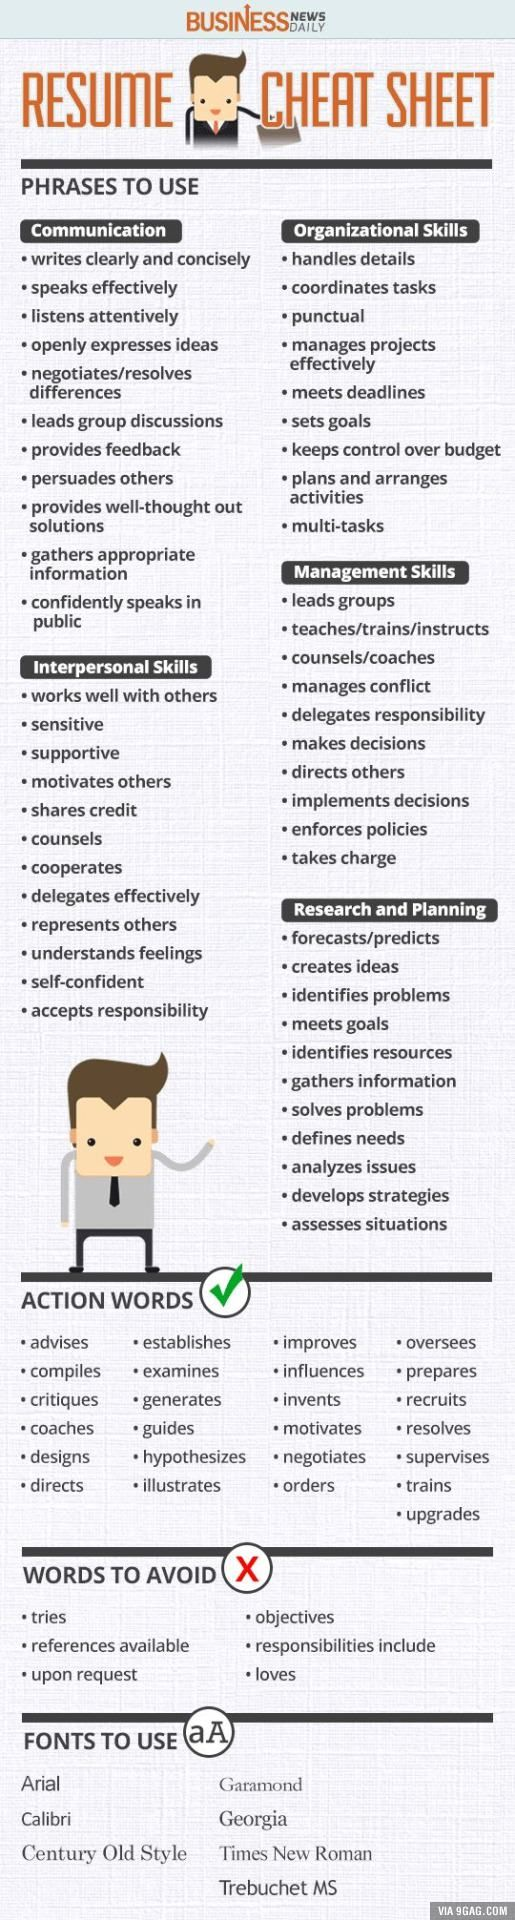 What phrases should you use on your resume that actually mean something?